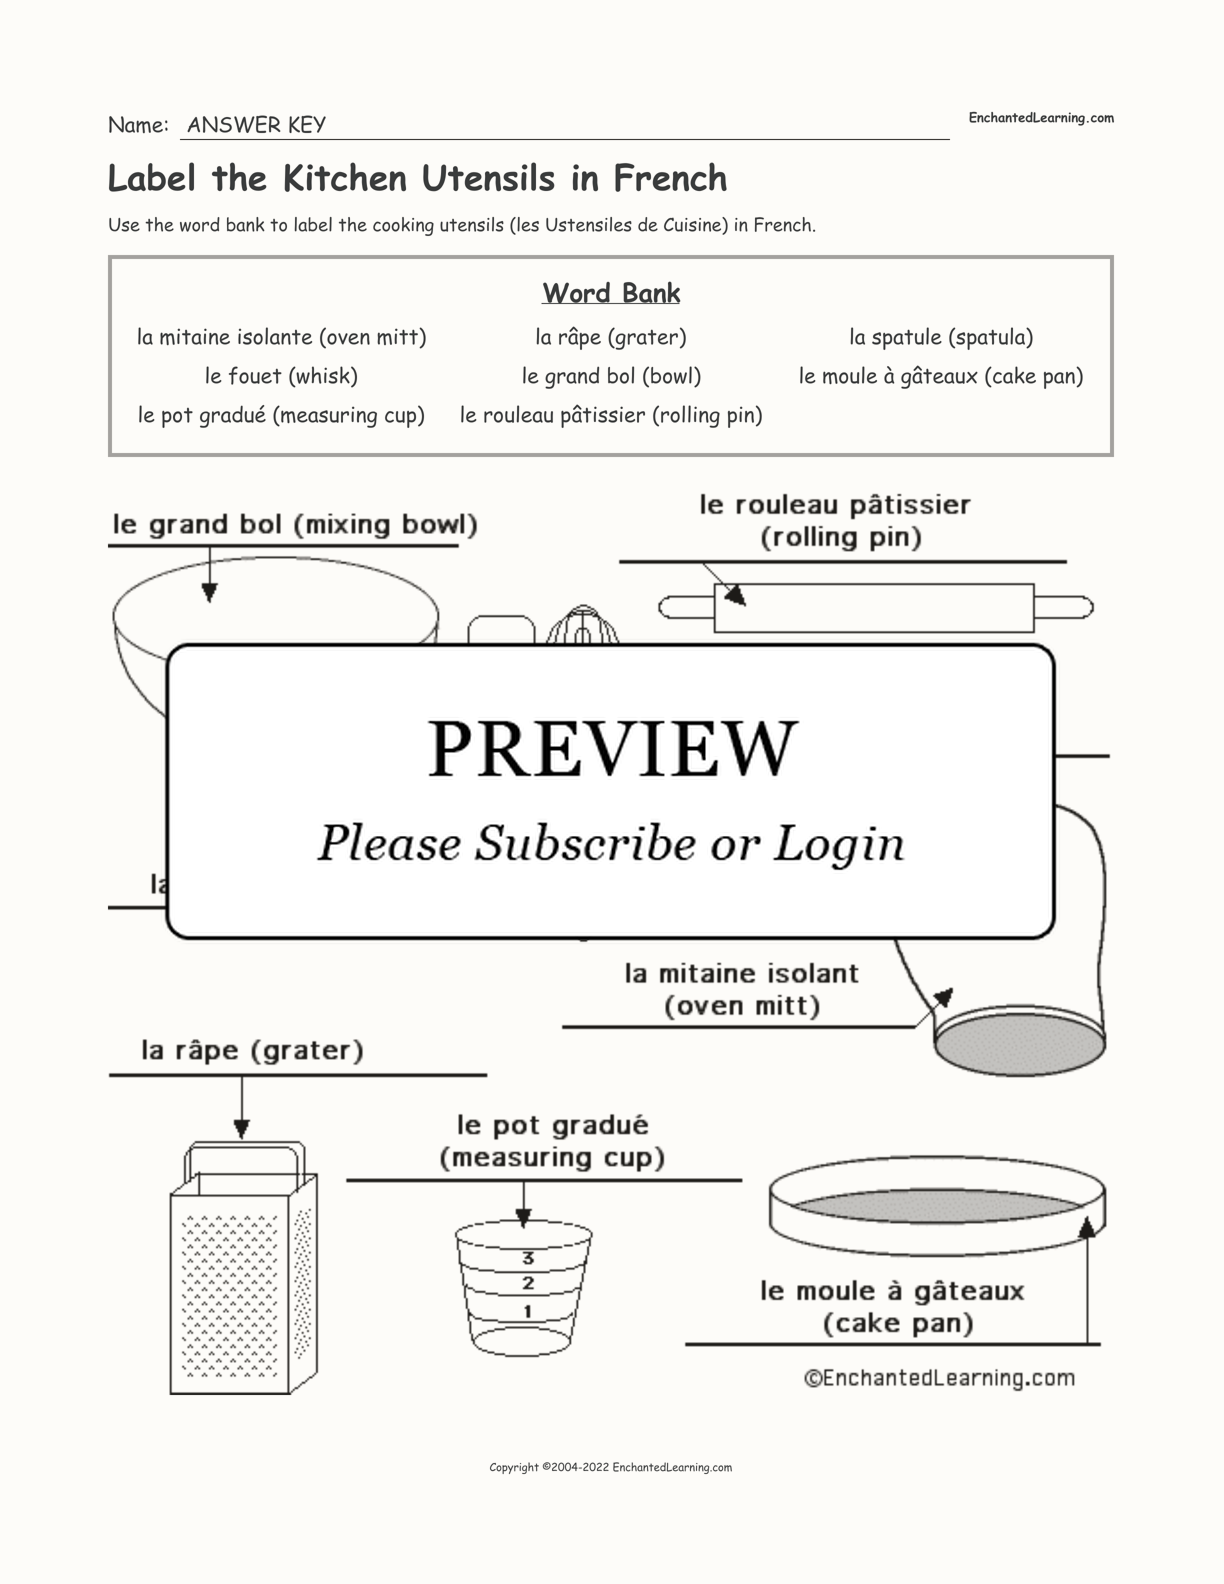 Label the Kitchen Utensils in French interactive worksheet page 2